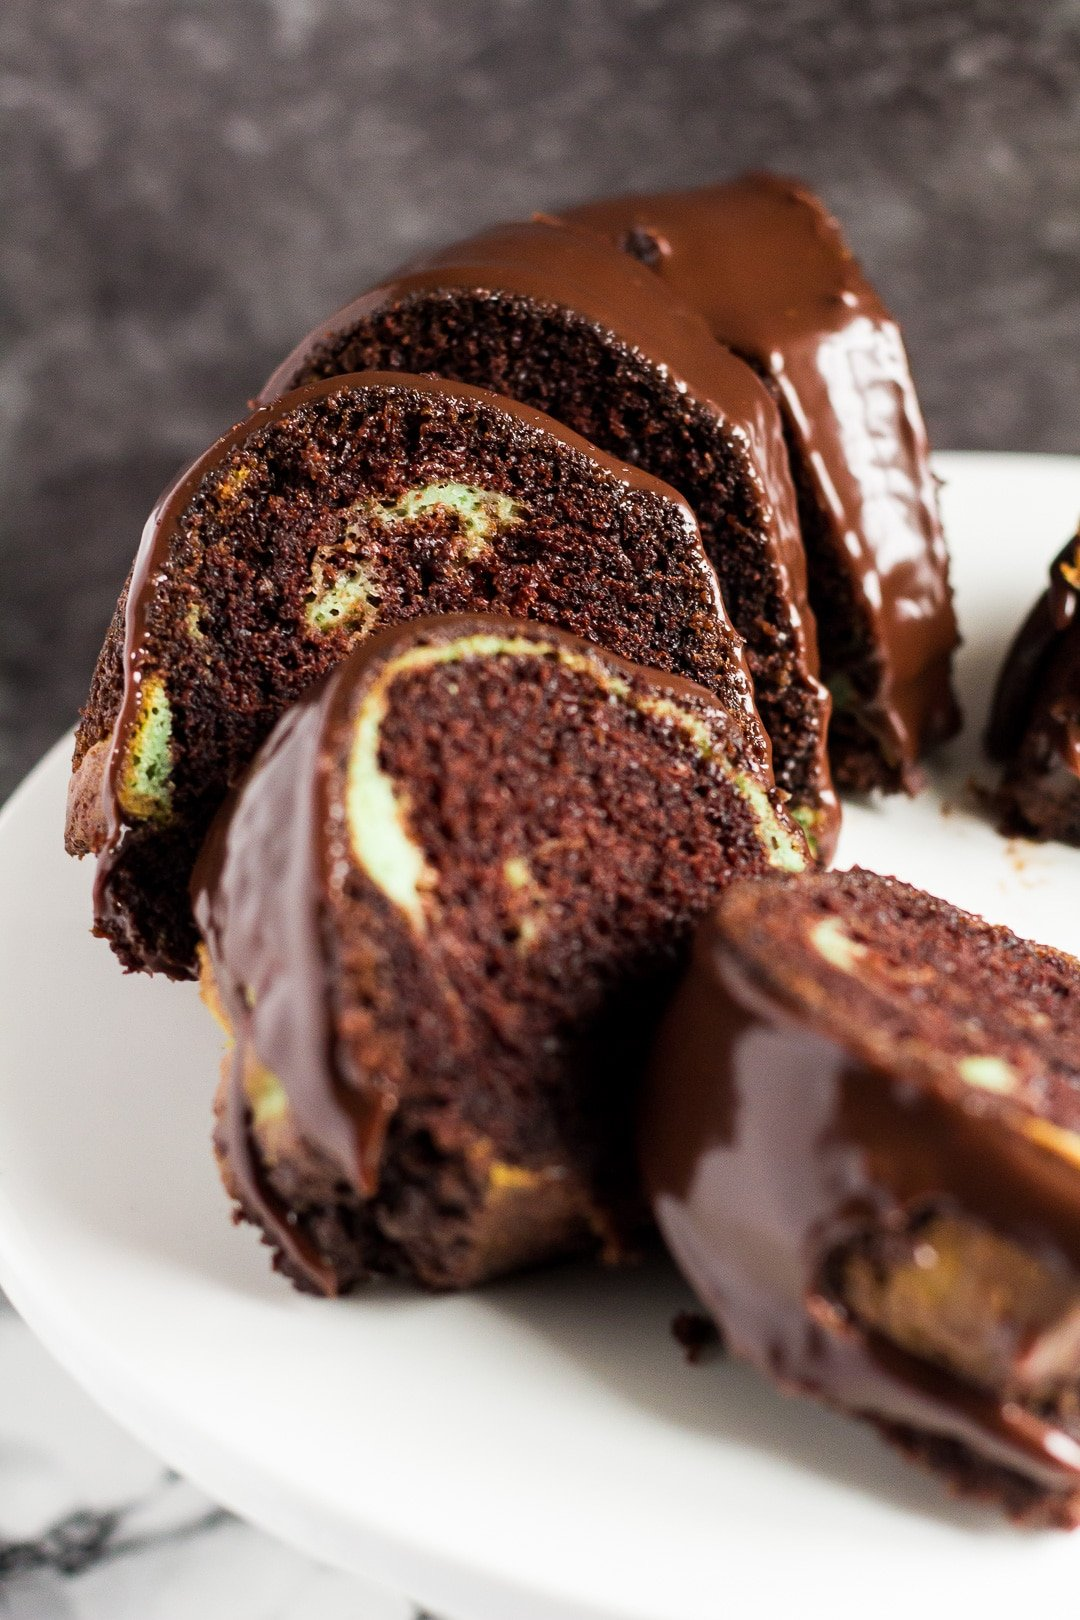 Slices of mint chocolate bundt cake served on a white cake stand.